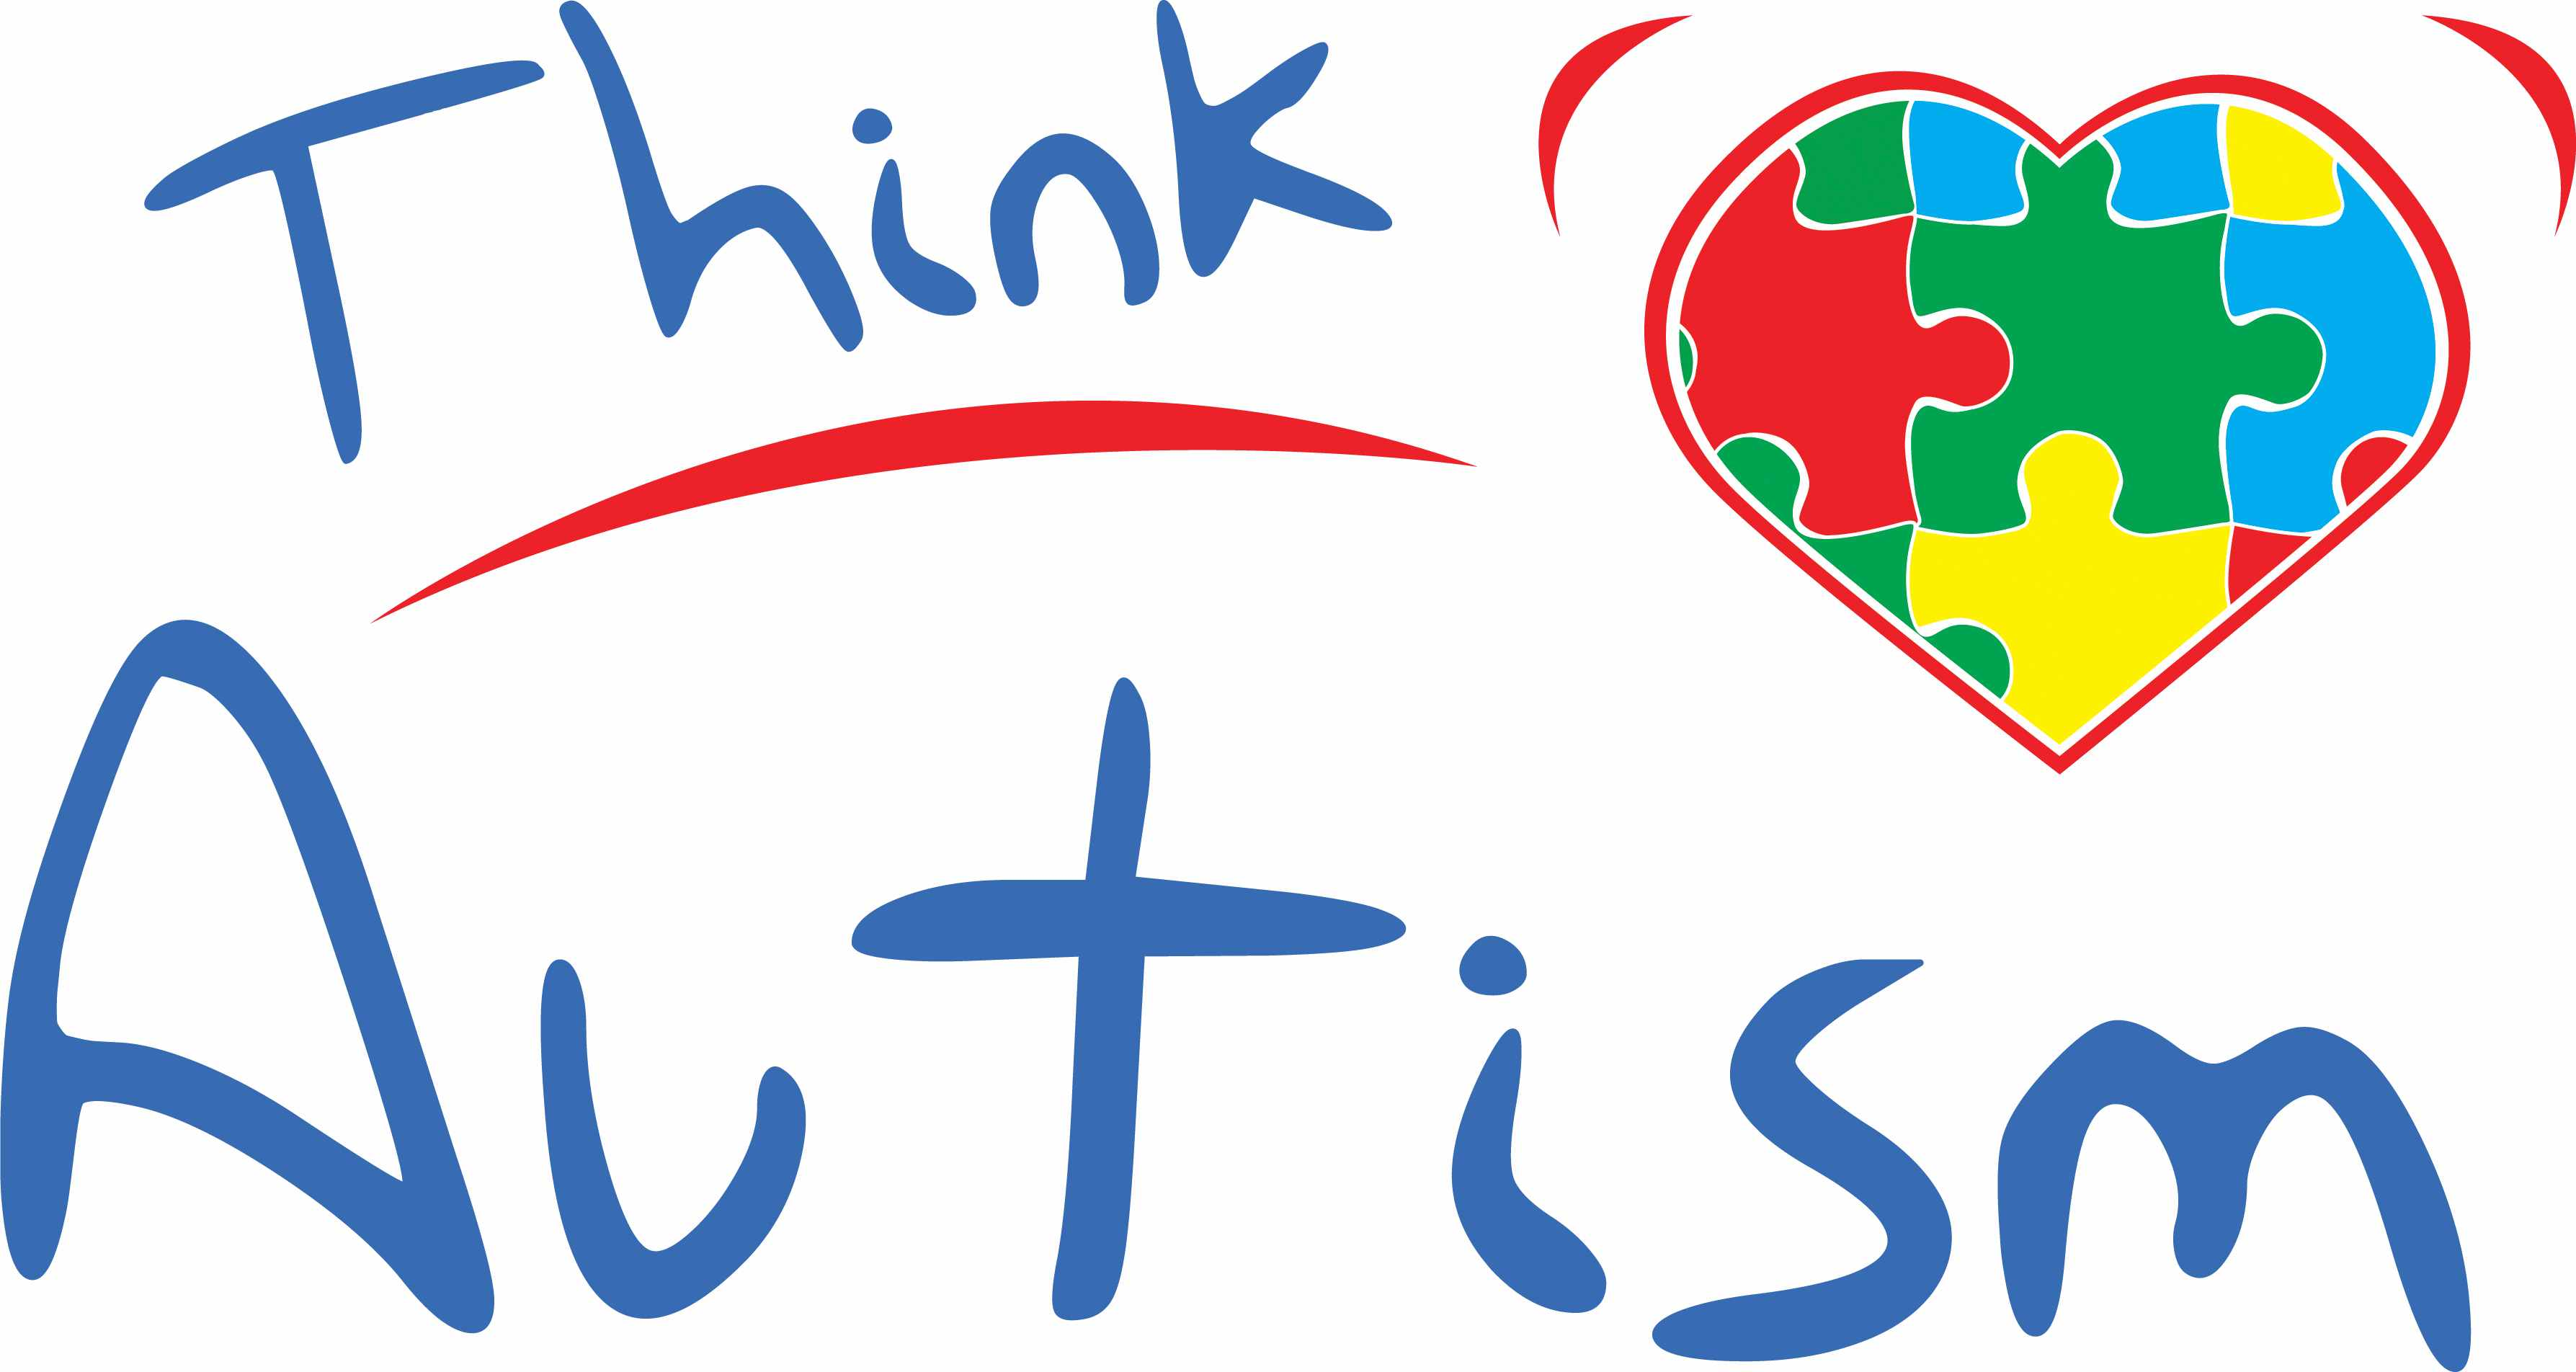 EVERYTHING ABOUT AUTISM